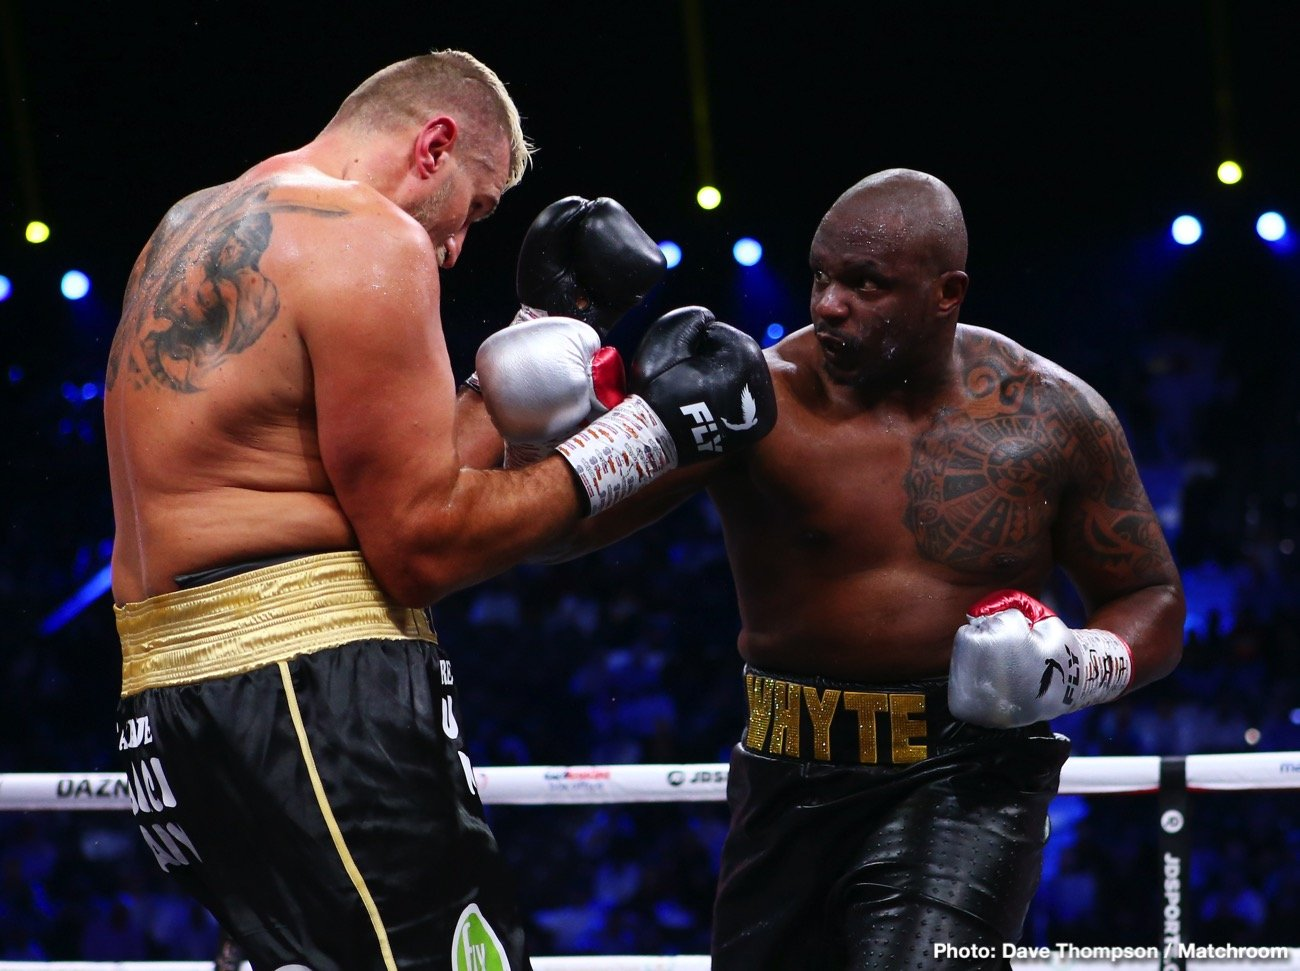 """Dillian Whyte - Promoter Eddie Hearn said at the weekend, after his second most famous heavyweight, Dillian Whyte, was cleared by UKAD, that he felt the WBC would """"do the right thing; the only thing"""" and reinstate Whyte as their interim heavyweight champion and give back Whyte's mandatory position."""